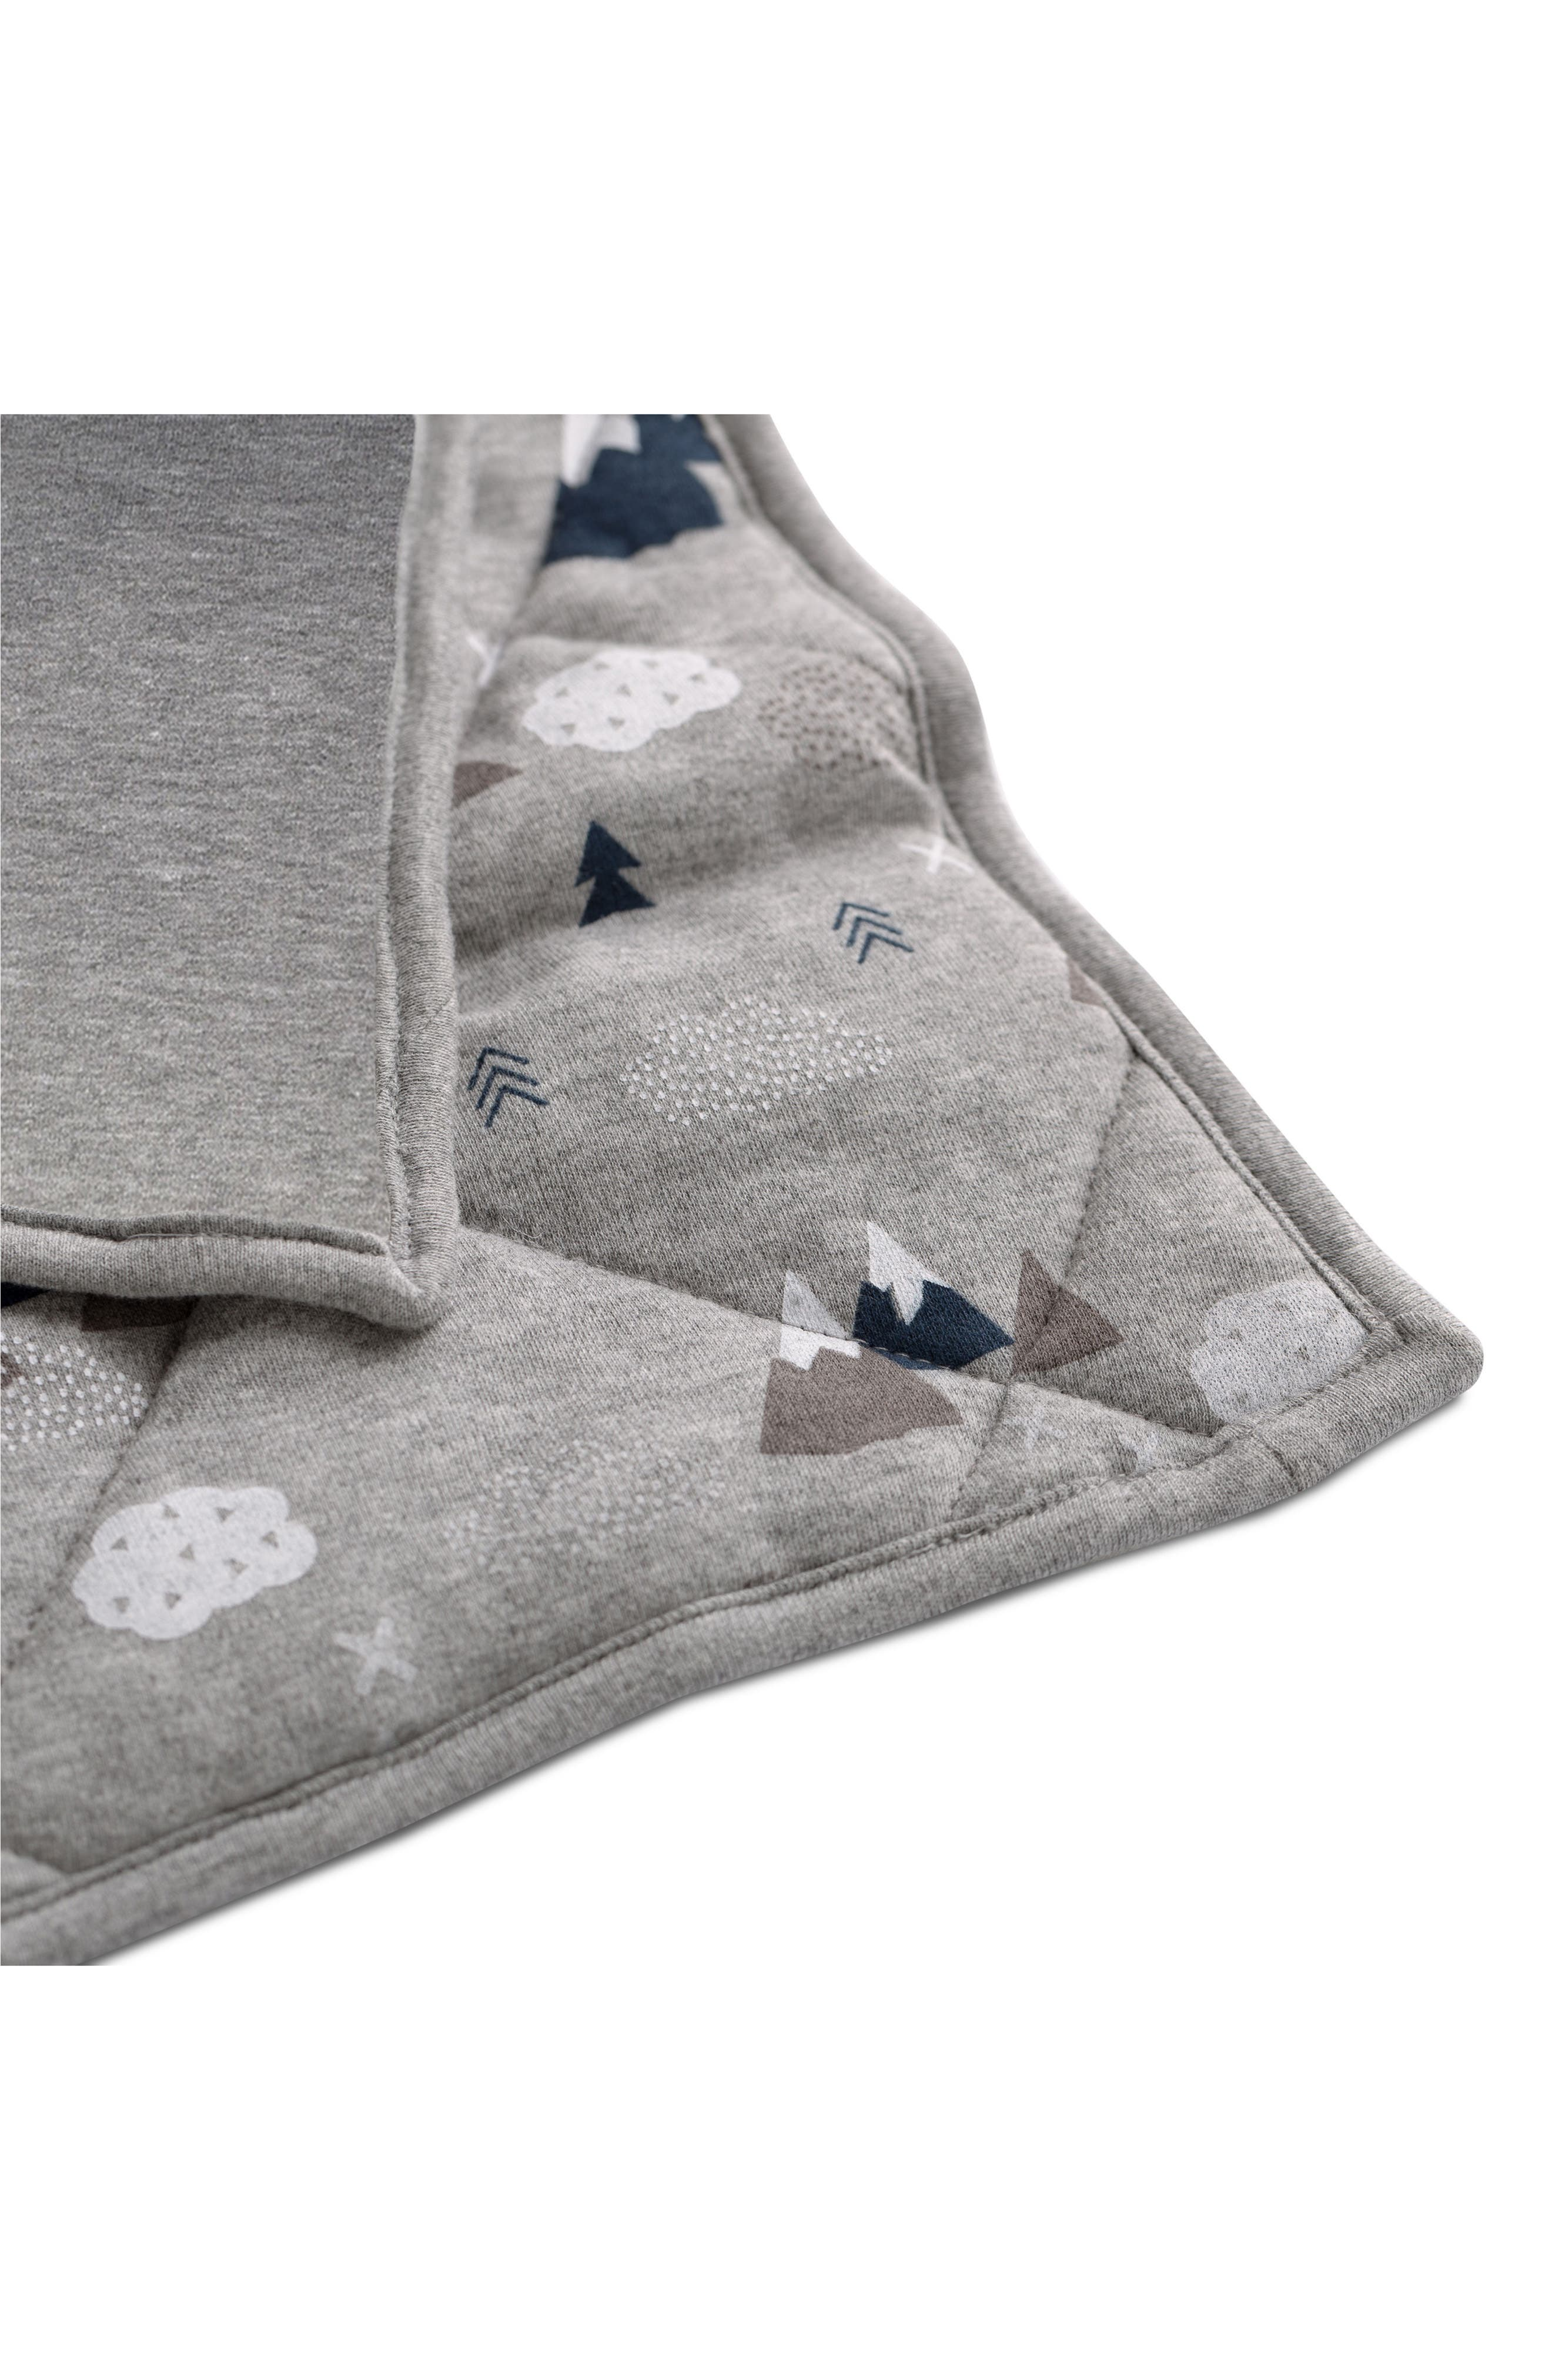 Peaks Quilted Comforter,                             Alternate thumbnail 3, color,                             020